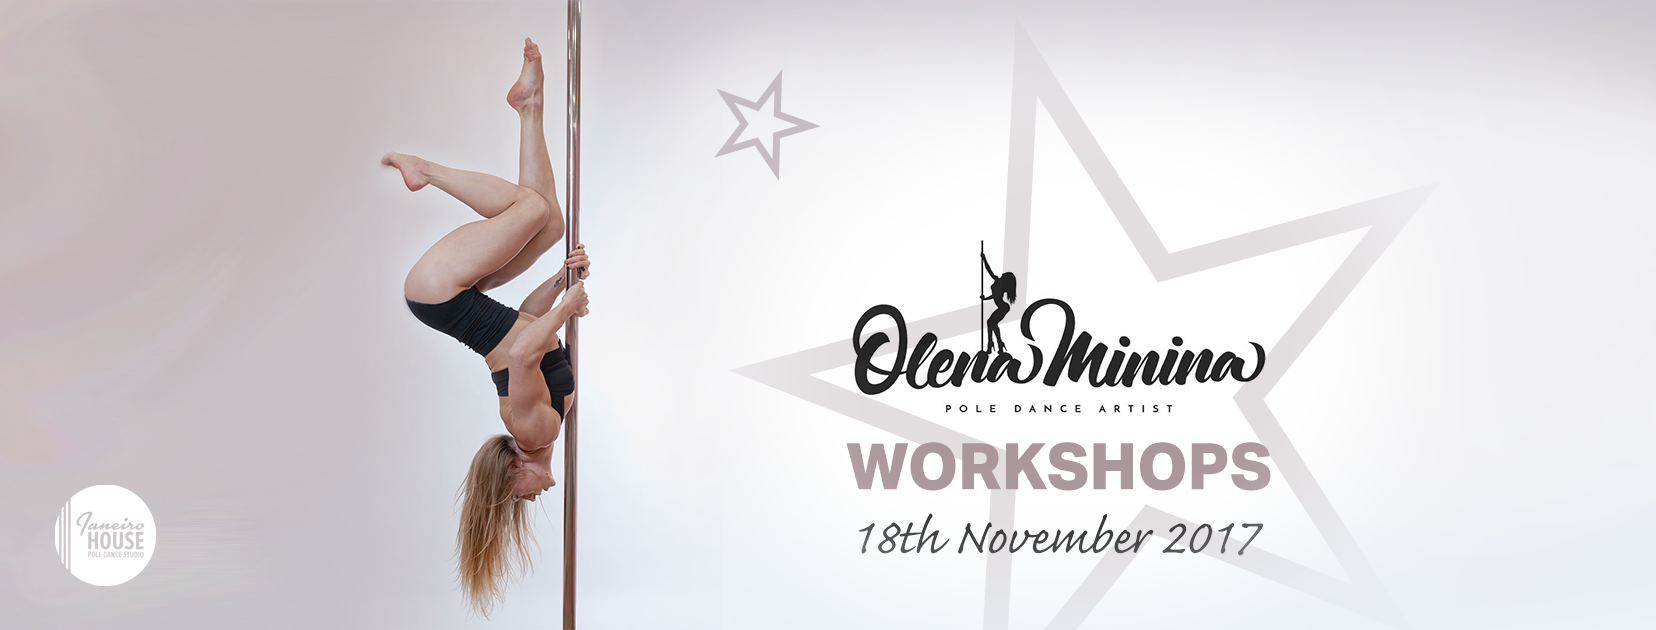 Workshops with Olena Minina